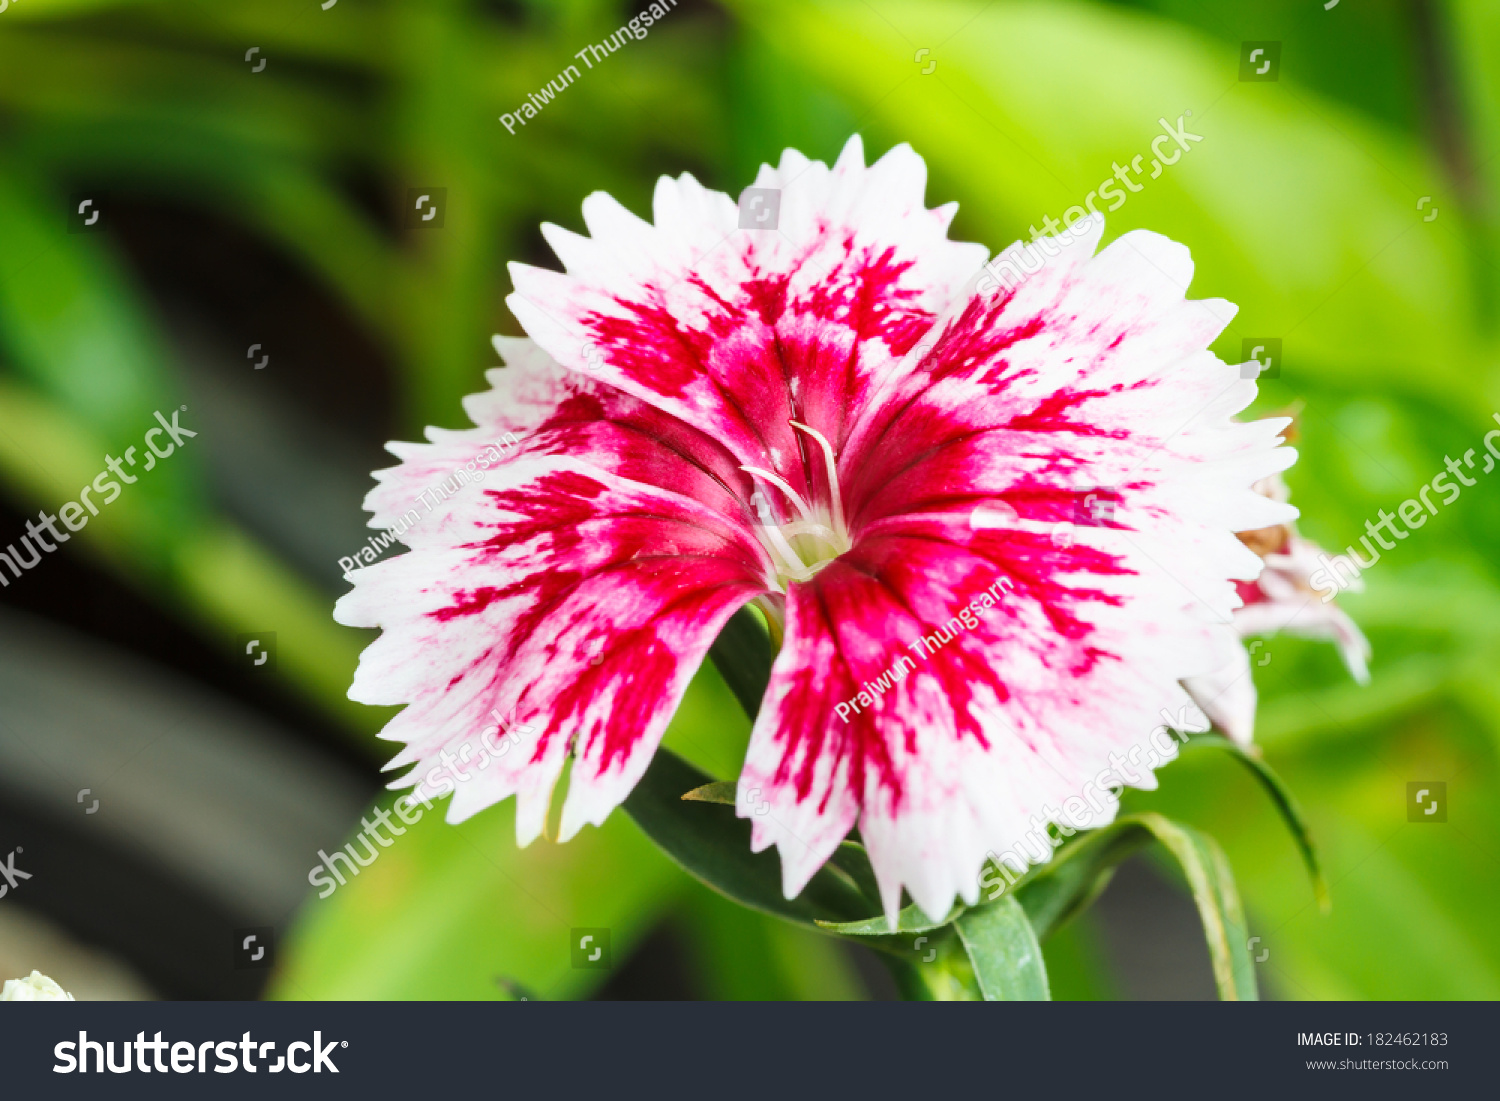 Indian Pink China Pink Flower Stock Photo Safe To Use 182462183